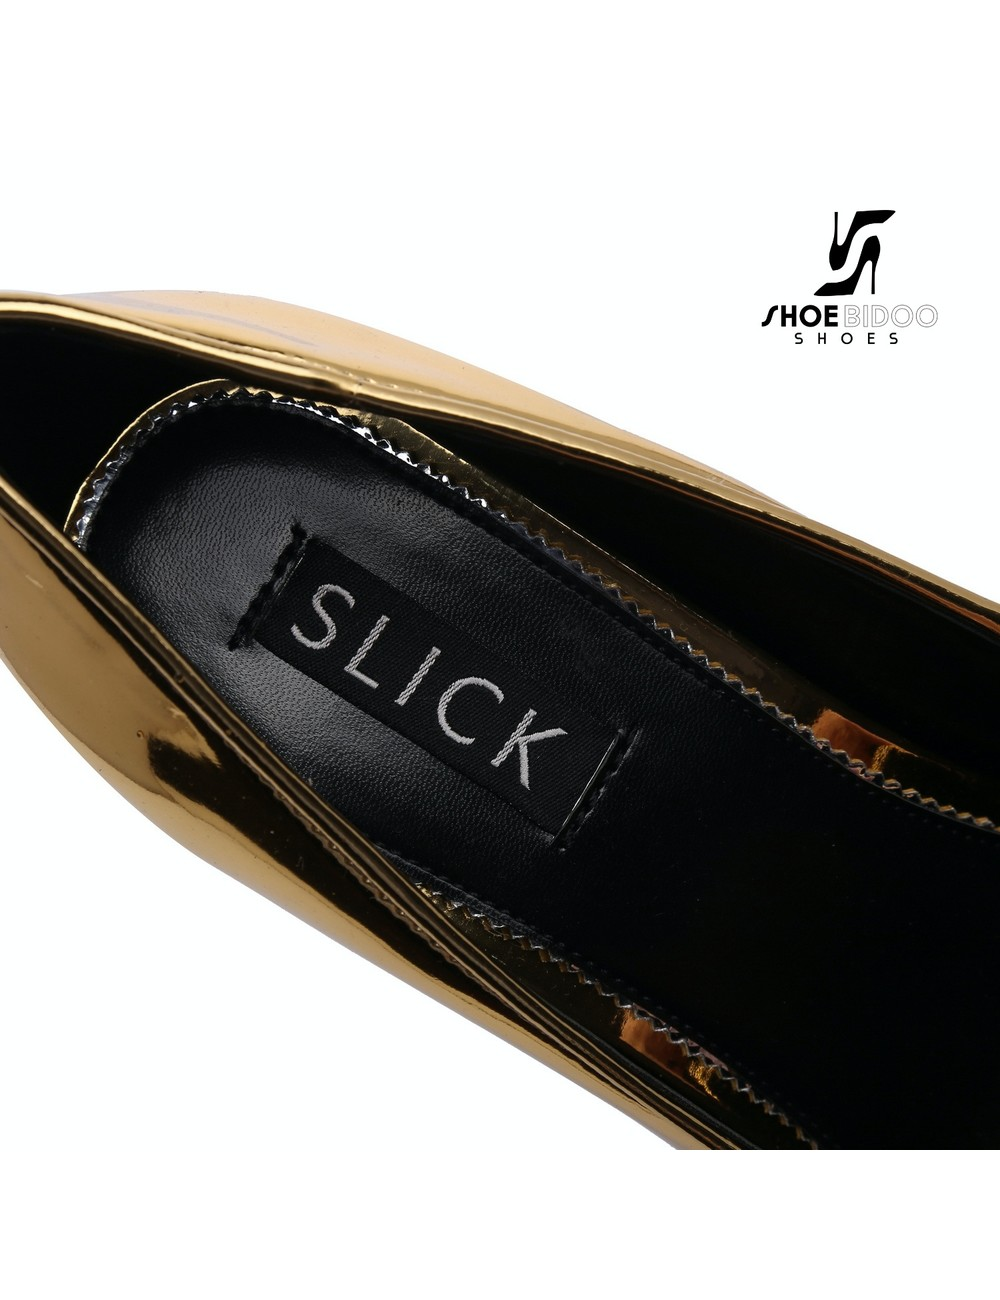 Giaro SLICK Gouden glanzende ESCALA SLICK Fetish platform pumps